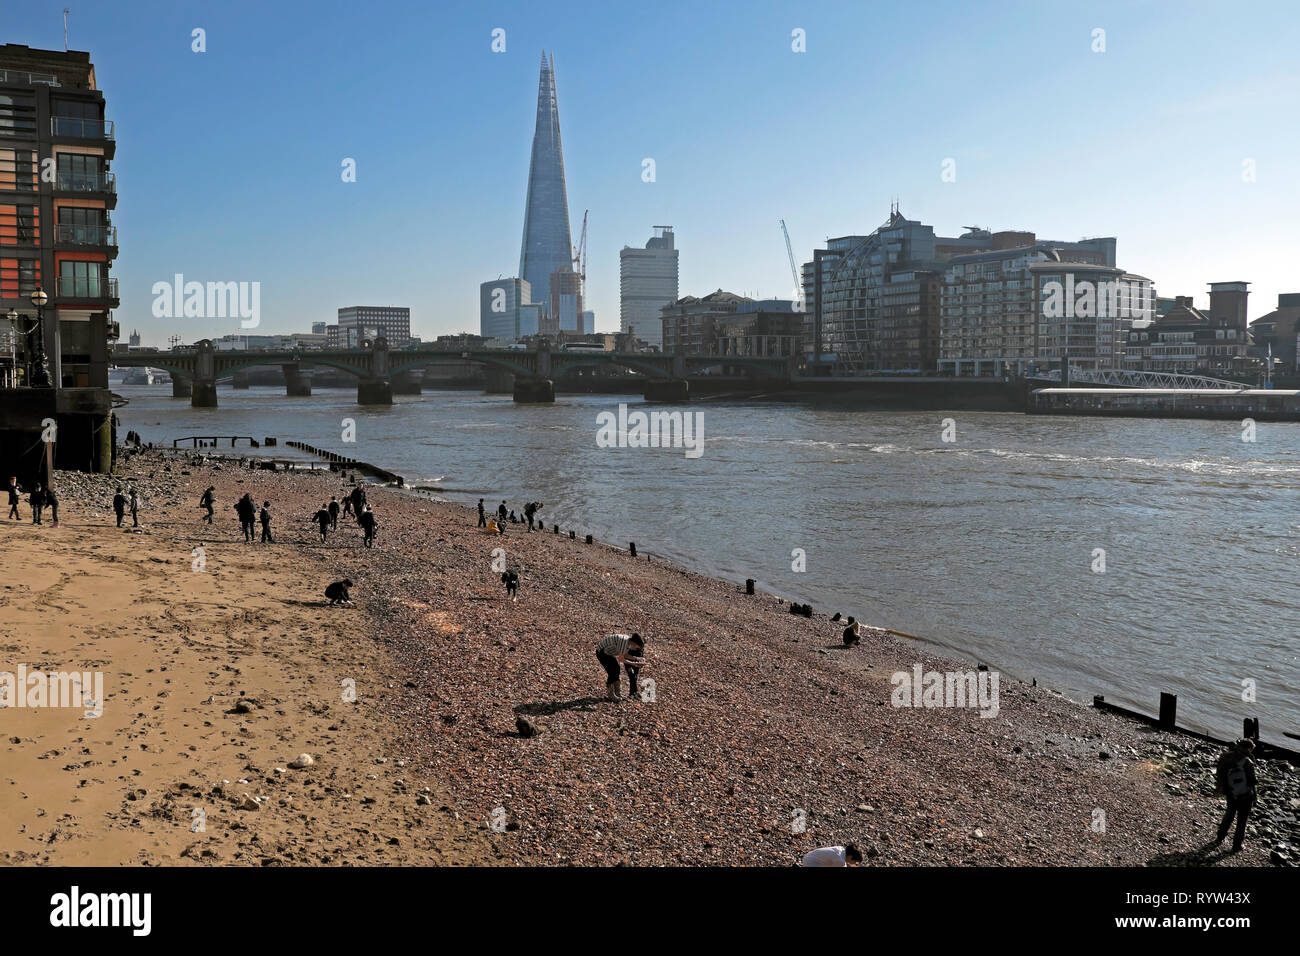 View of River Thames at low tide, Shard building, people mudlarking near Queenhithe and Southwark Bridge in London EC4 England UK  KATHY DEWITT - Stock Image